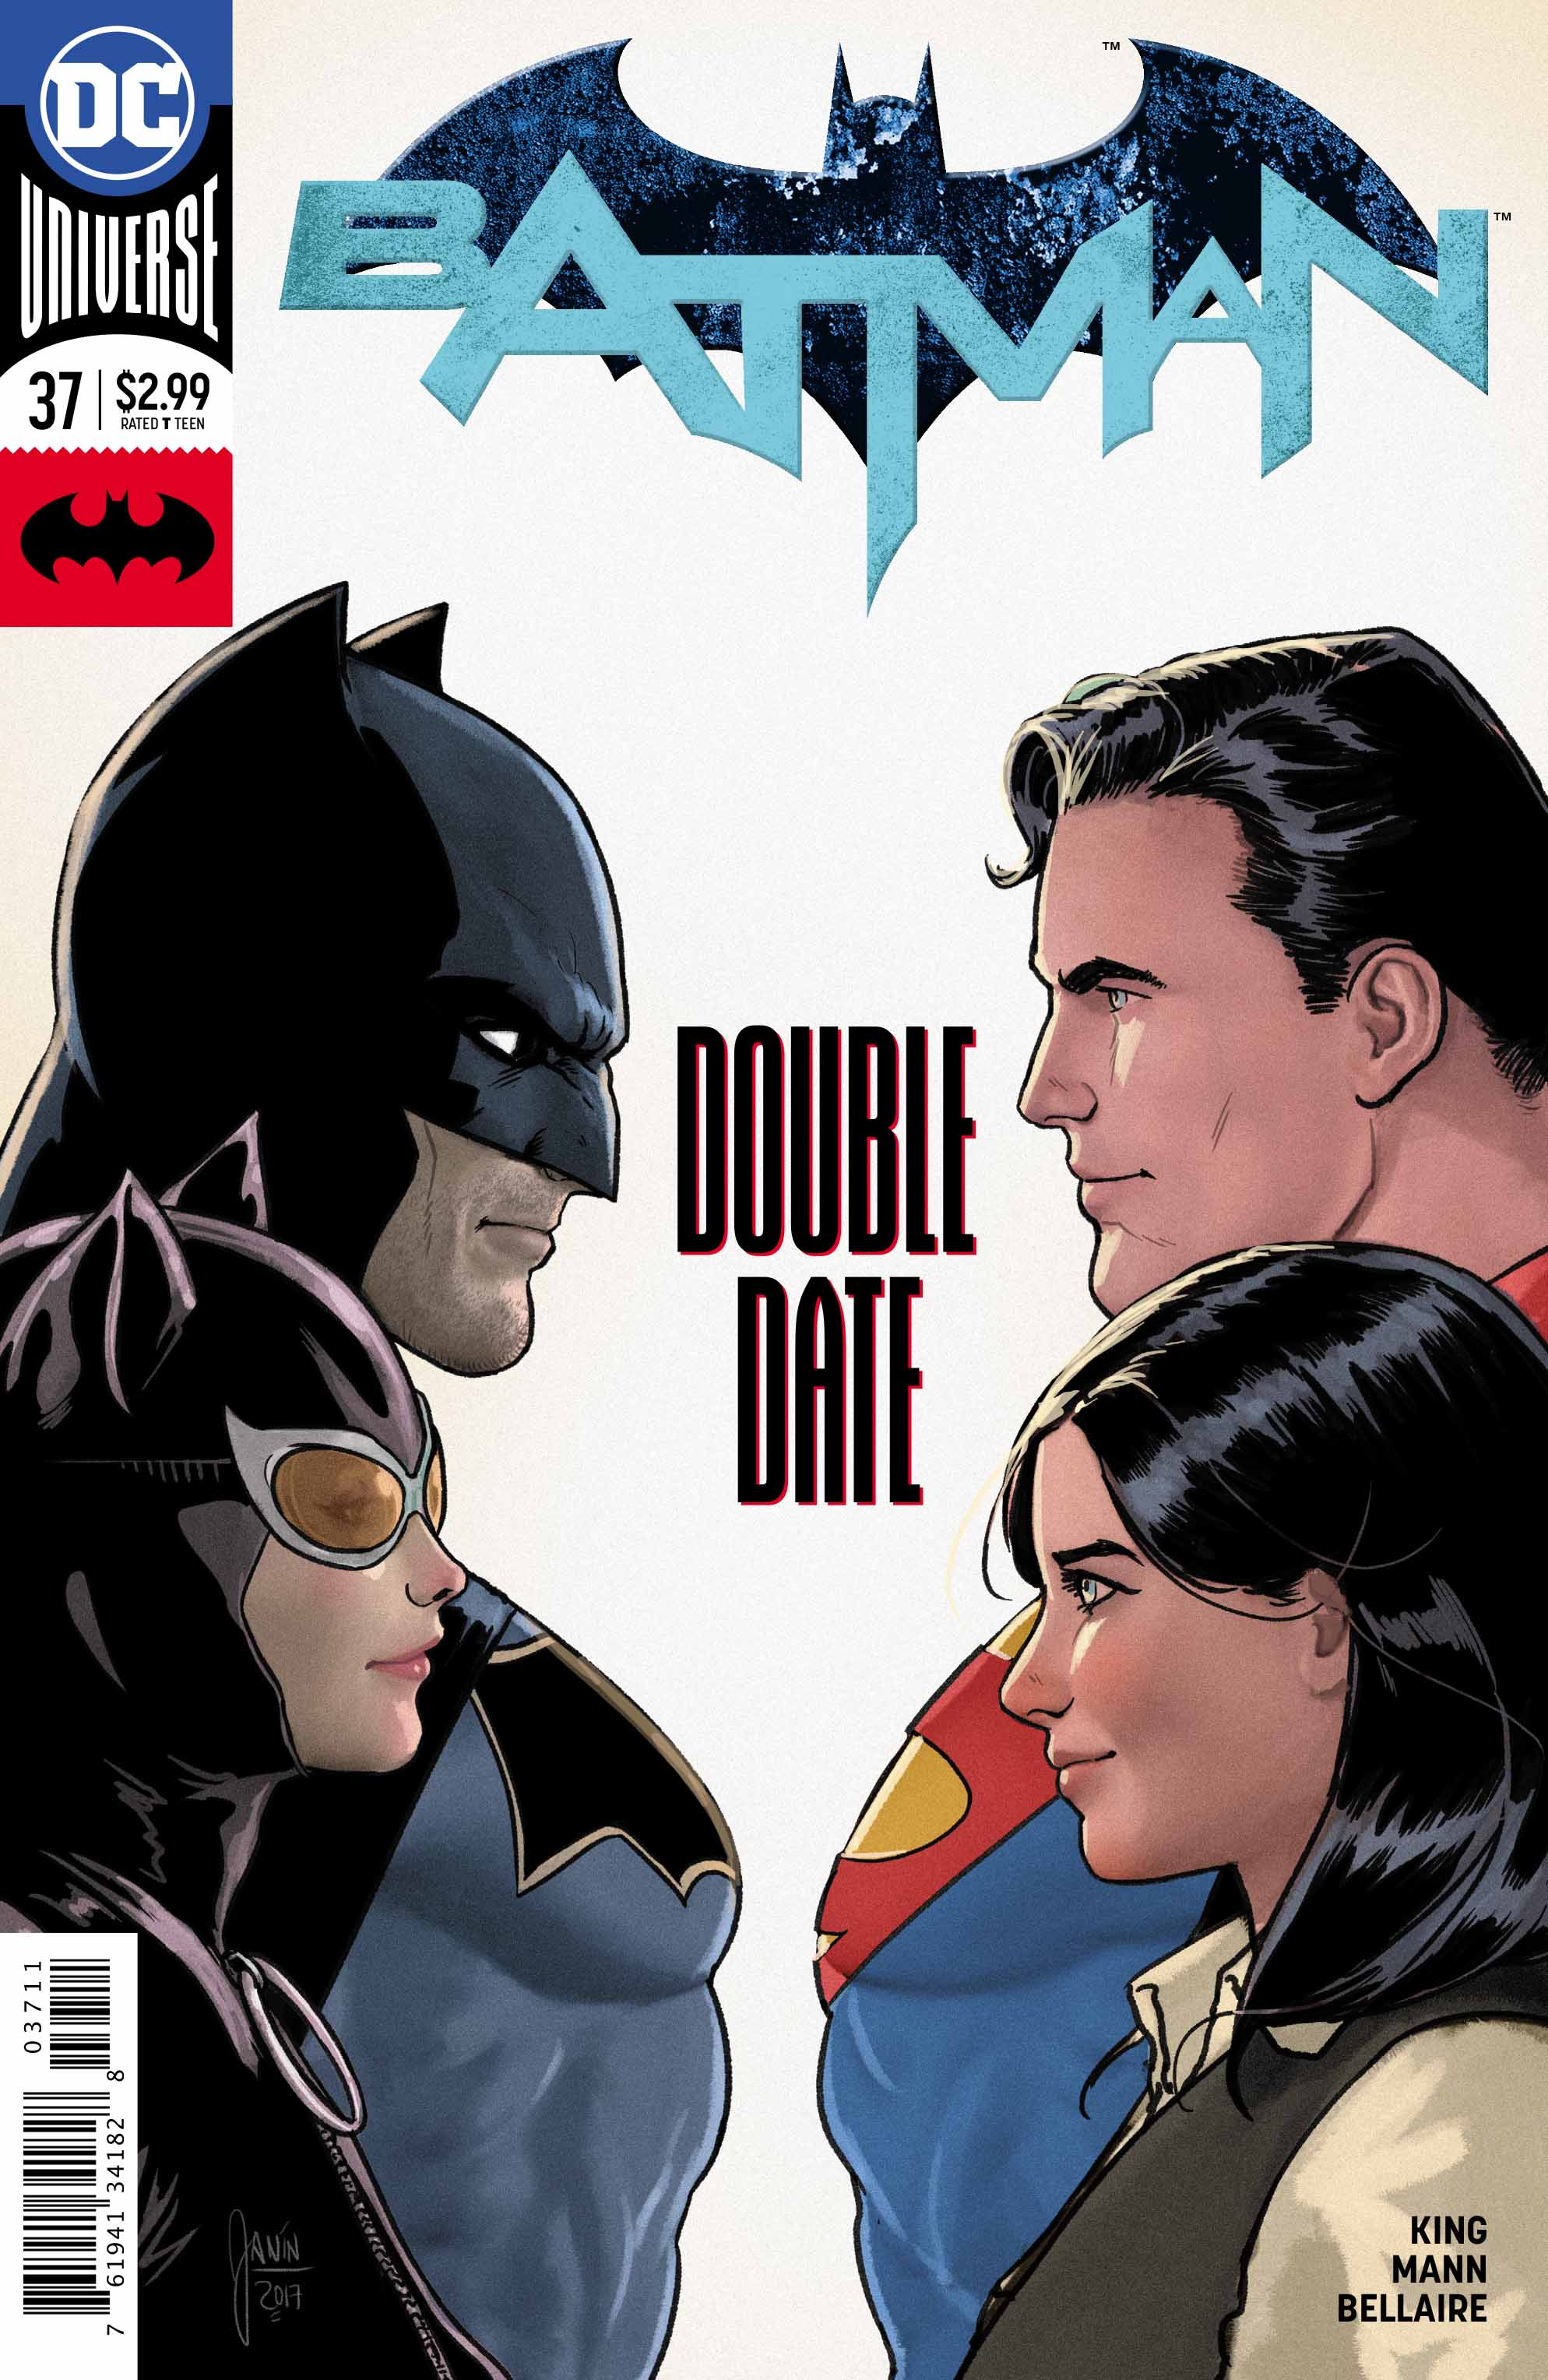 Batman And Superman Swap Costumes On Hilarious Double Date